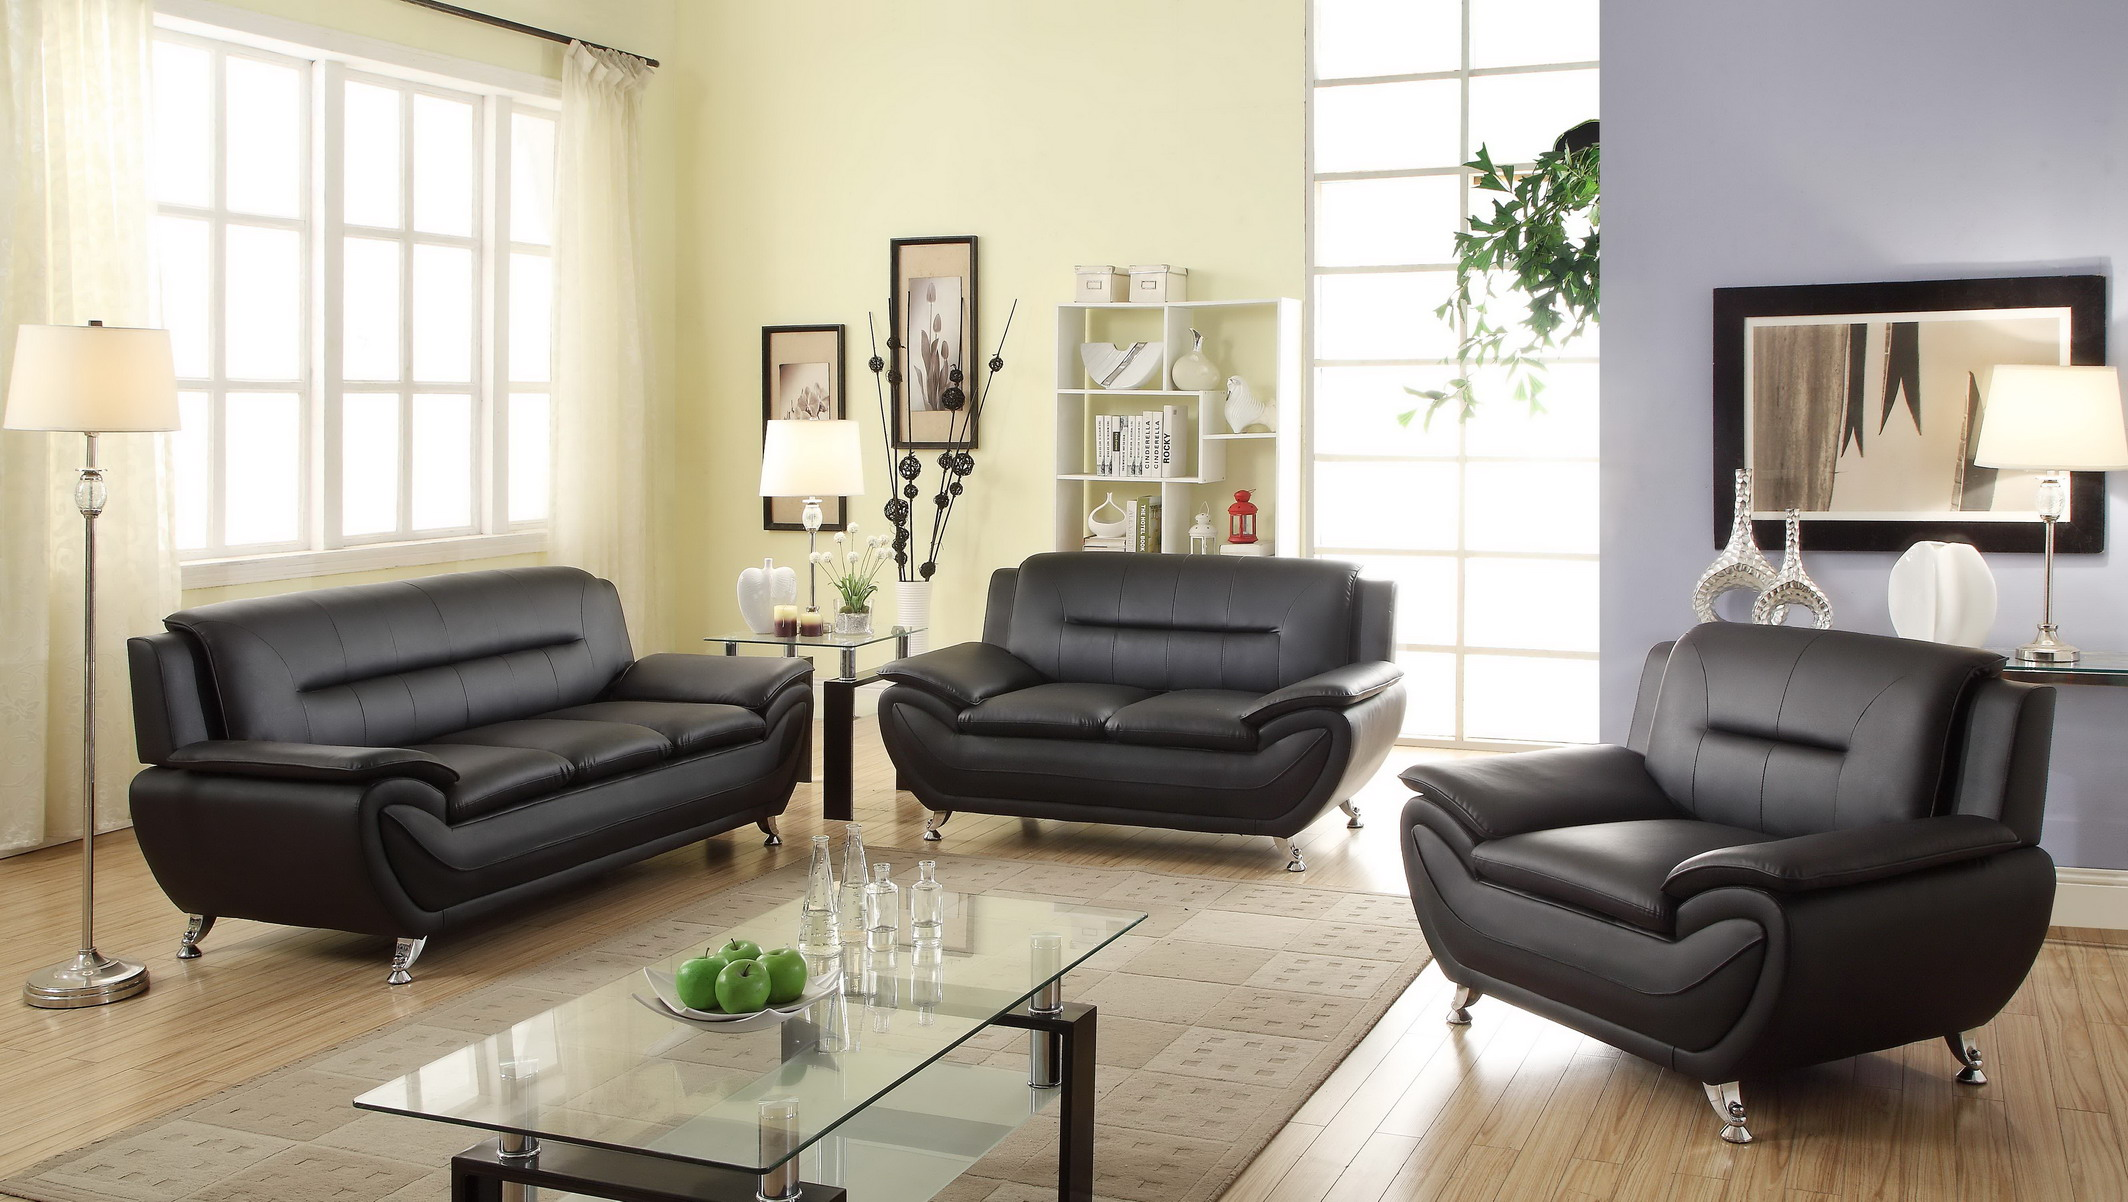 Ava furniture houston cheap discount contemporary for Cheap furniture houston